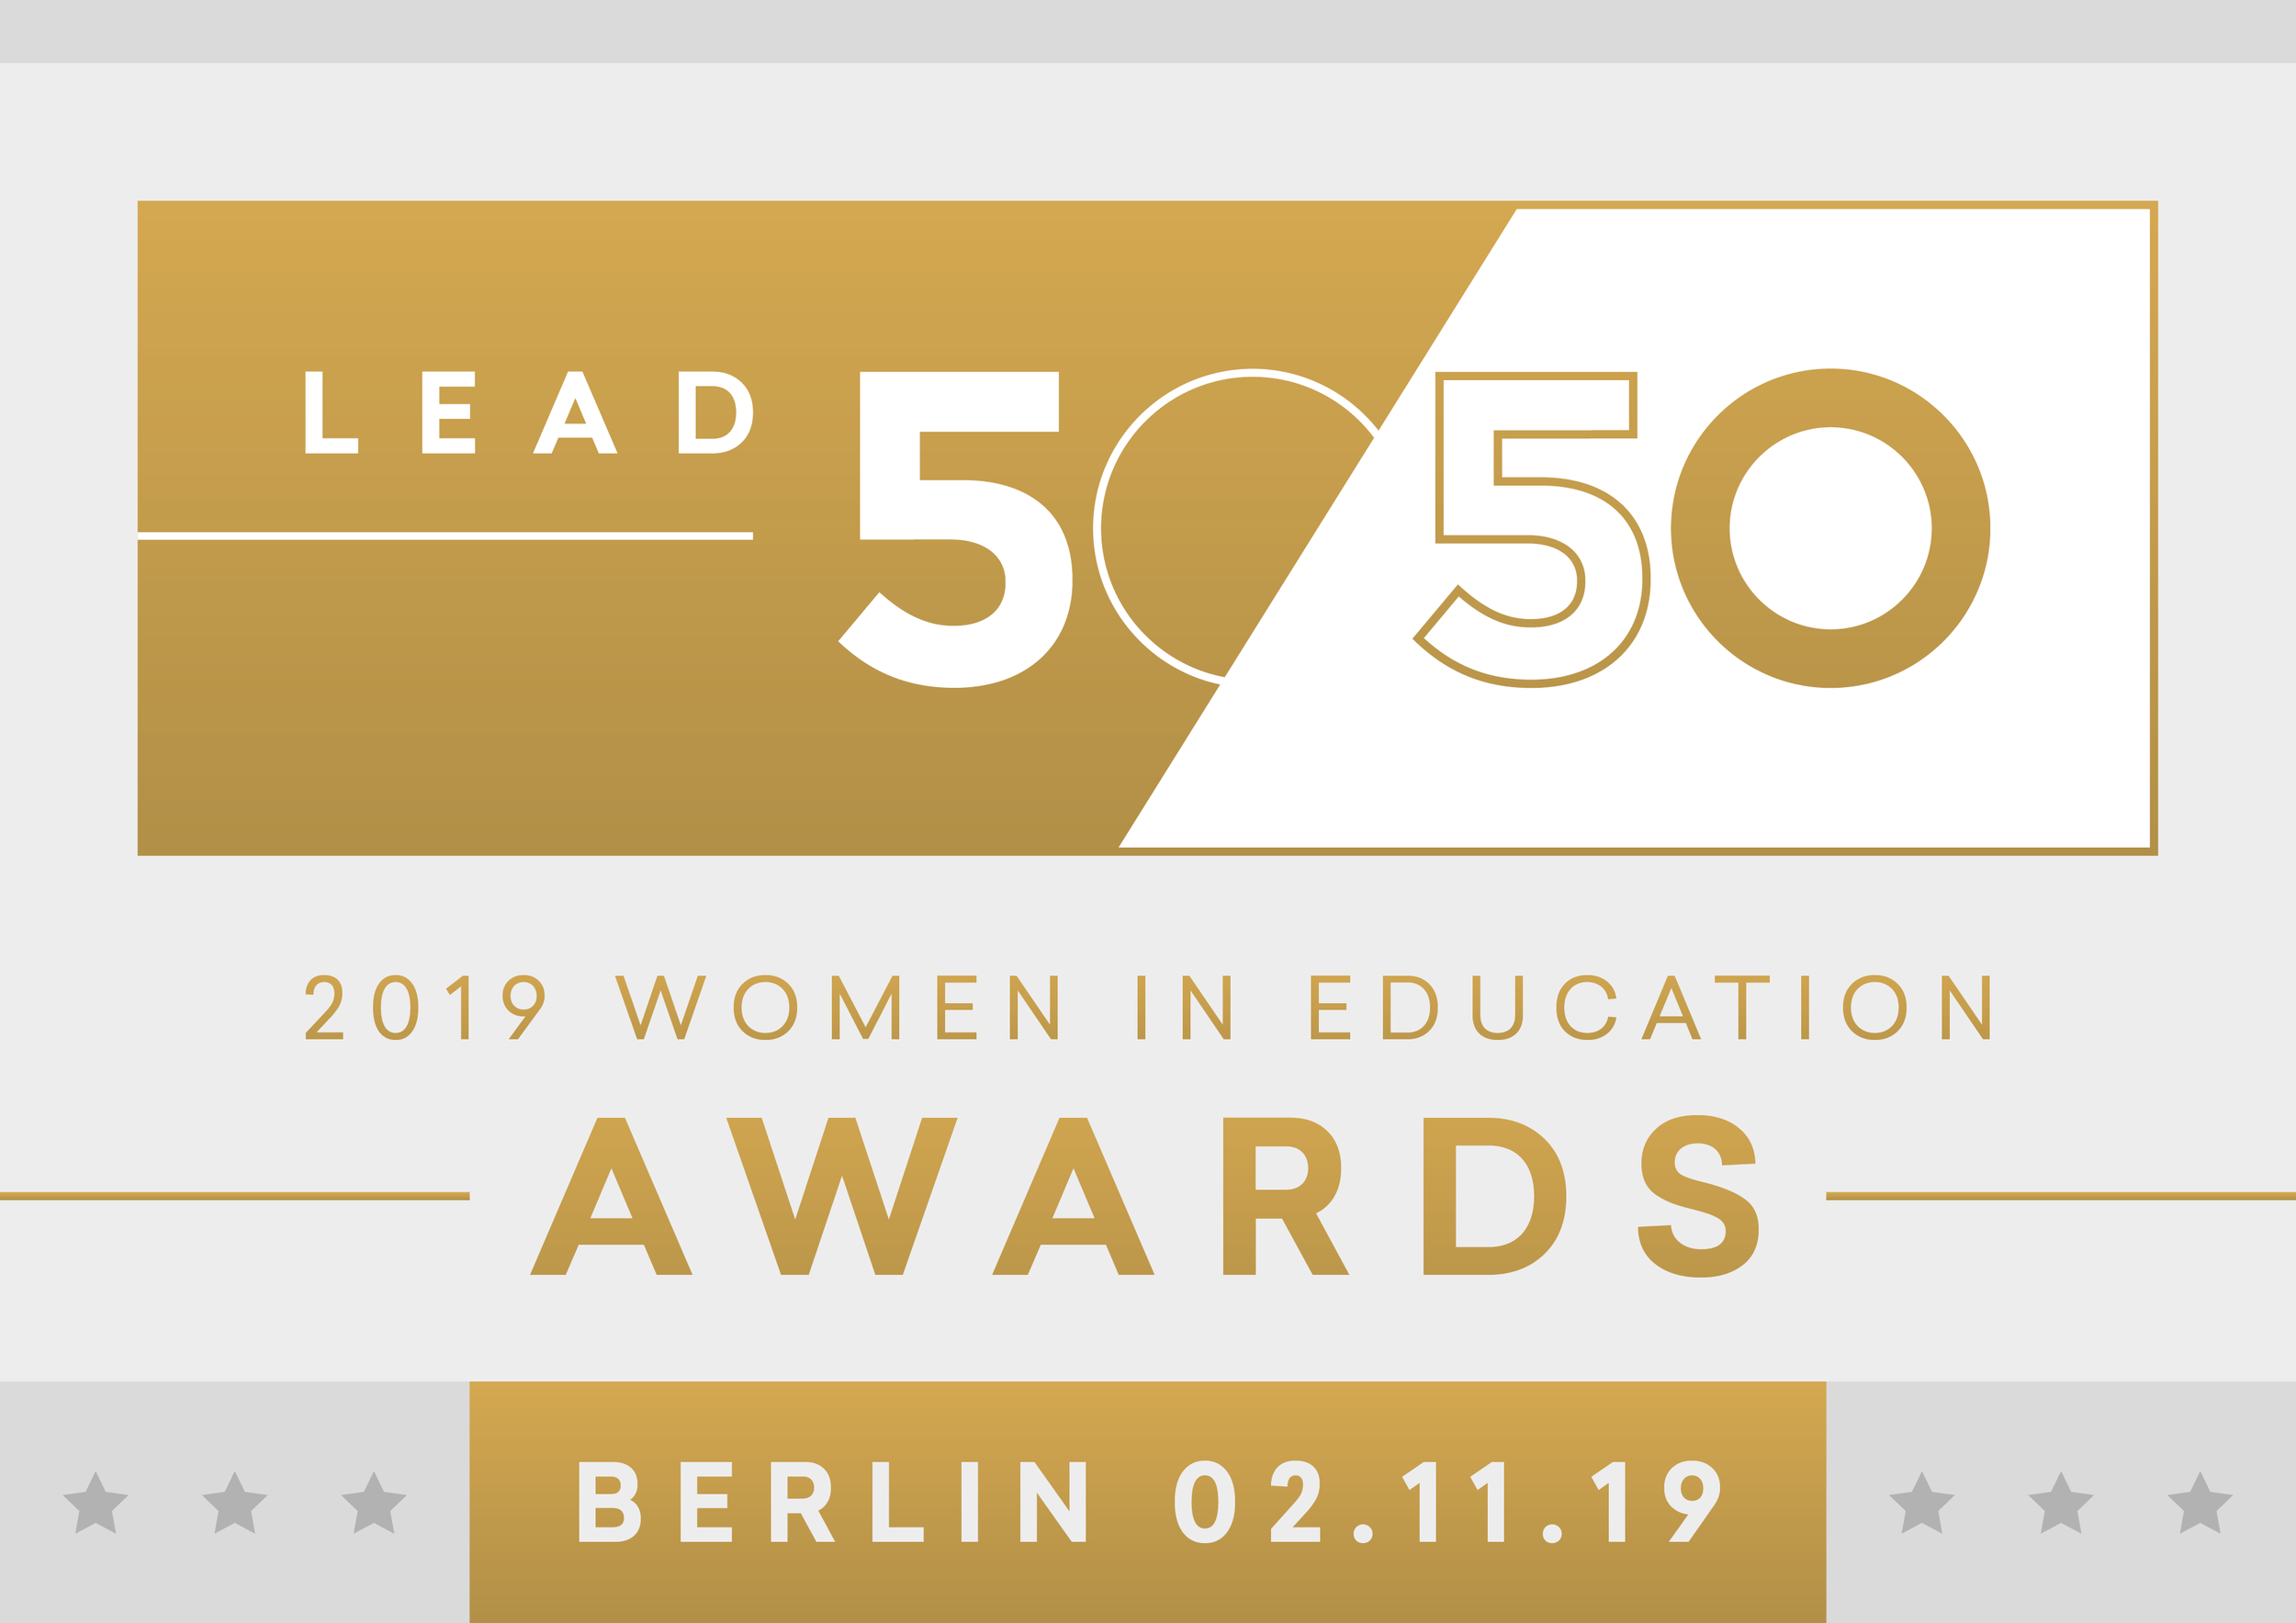 Lead5050_WIE_Awards_2019_v2_Lrg.png